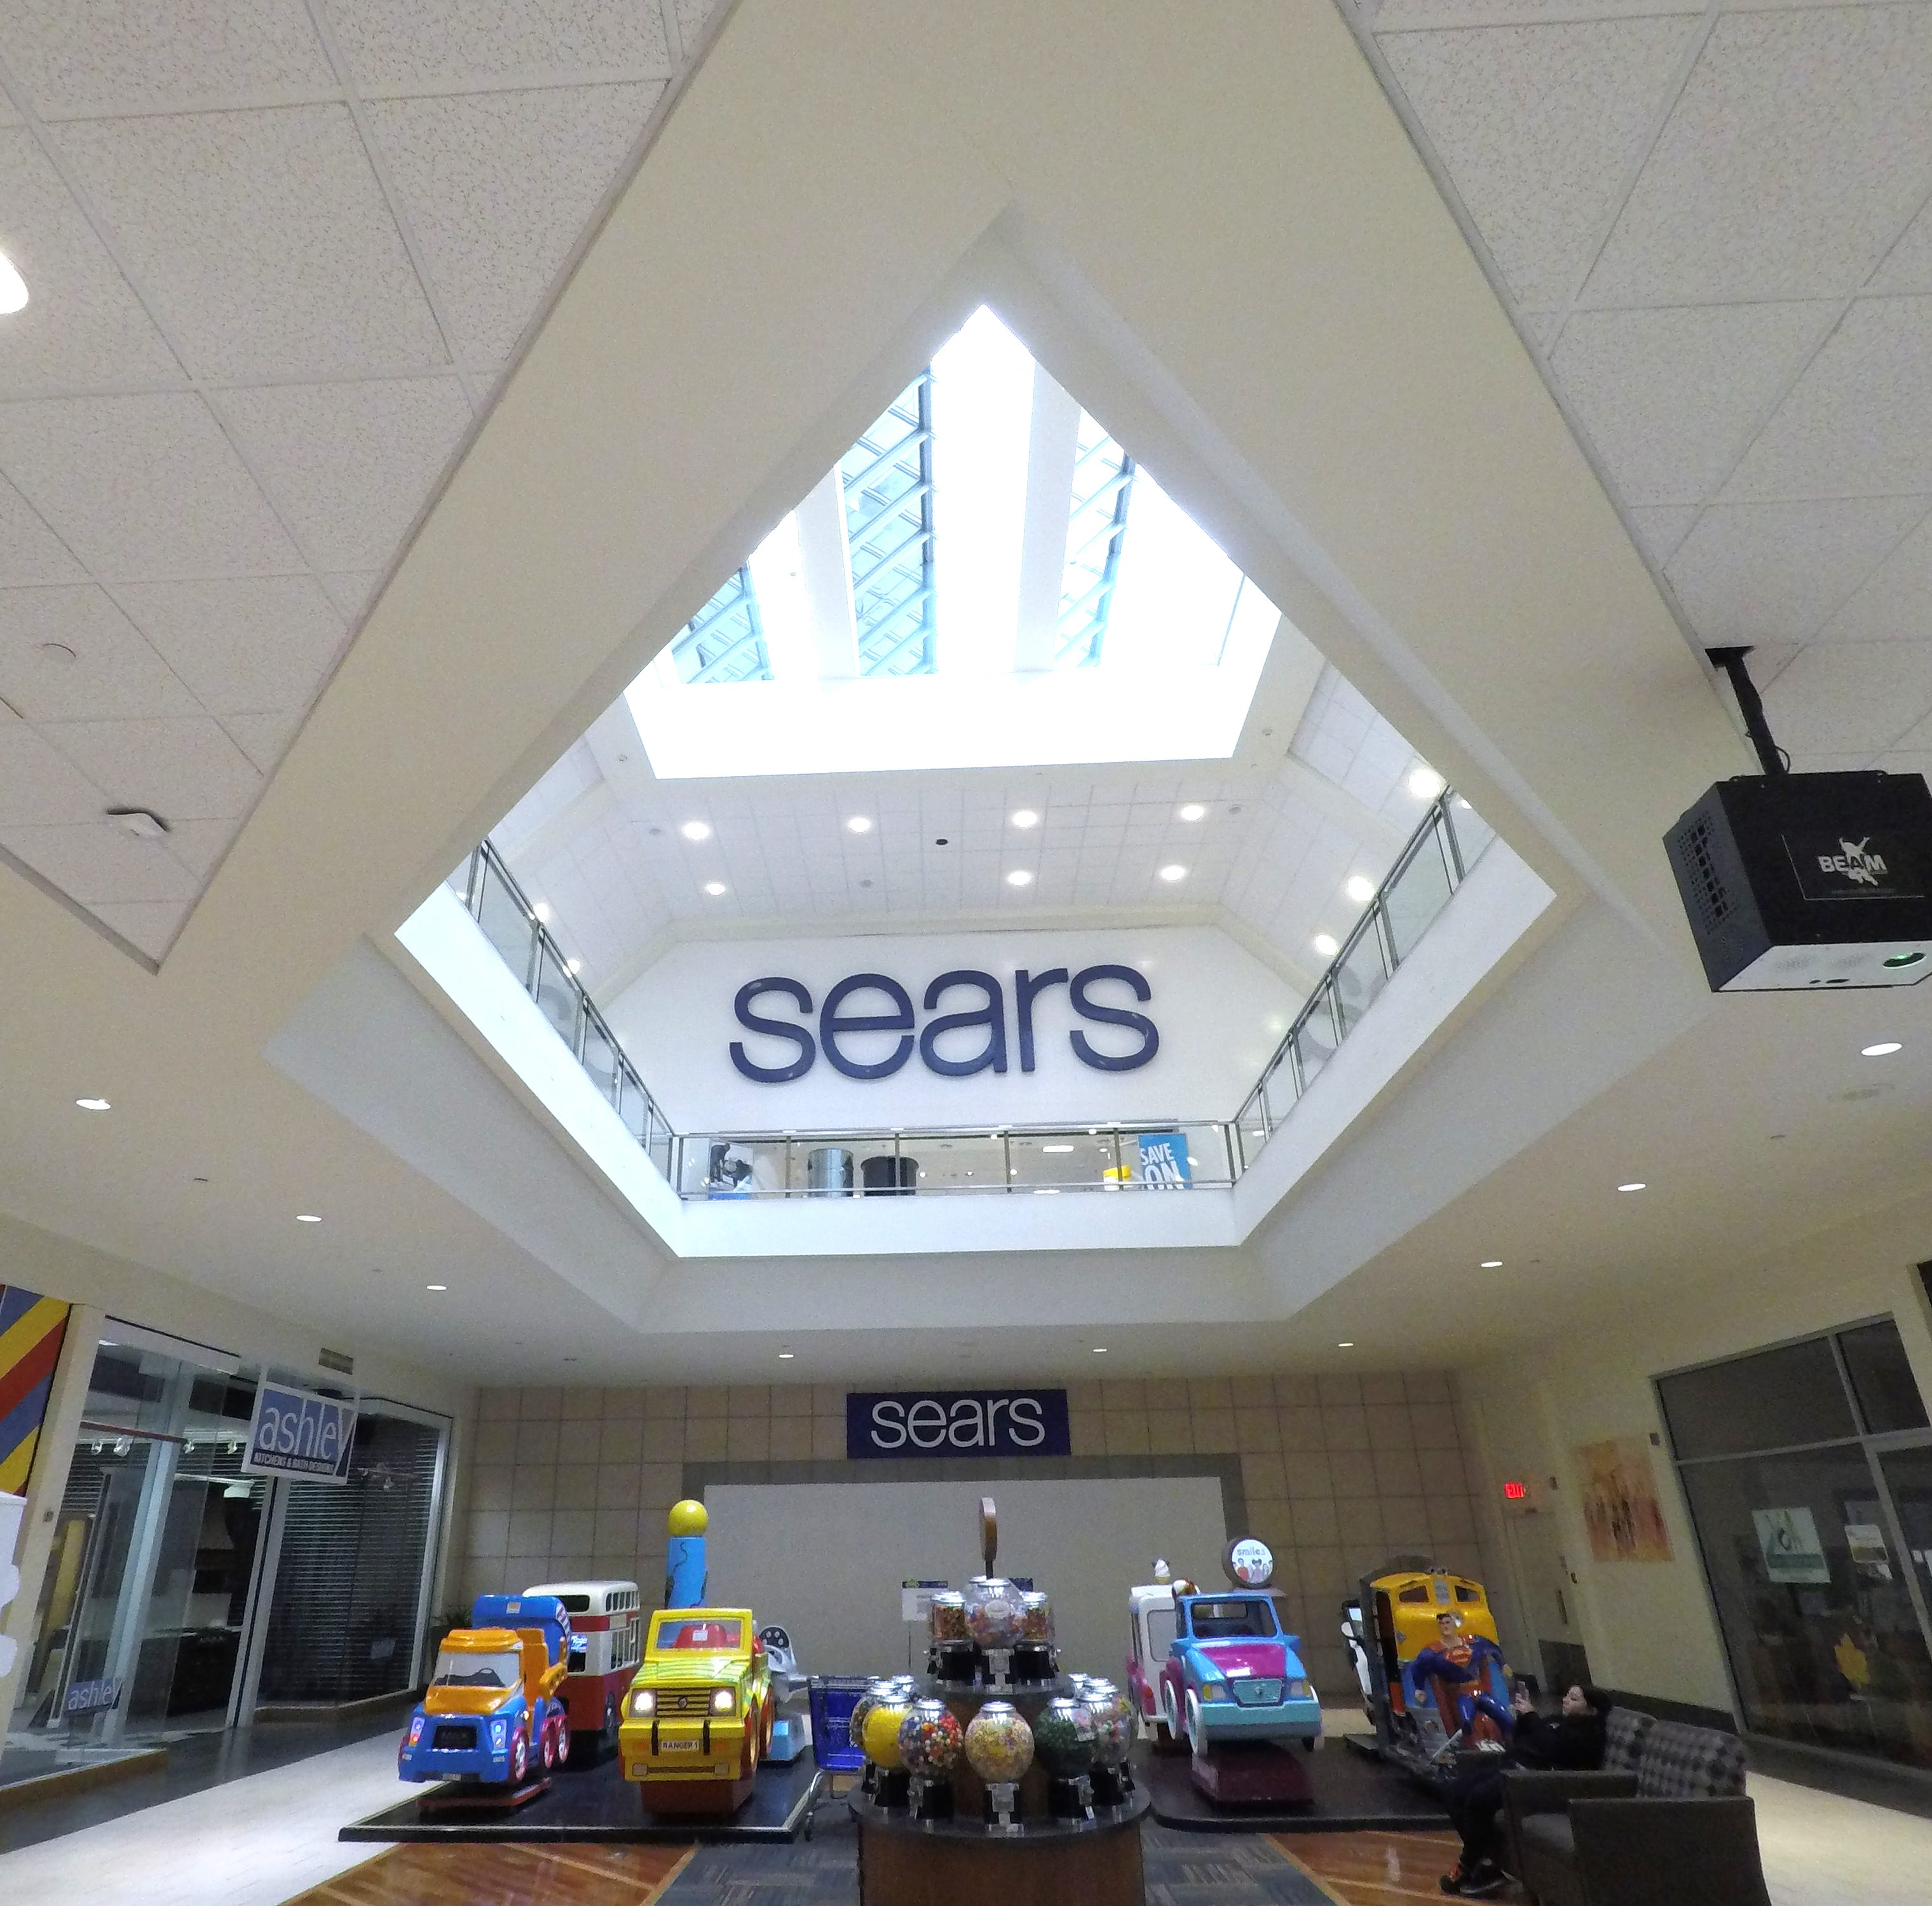 Sears at the Jefferson Valley Mall on Oct. 15, 2018.